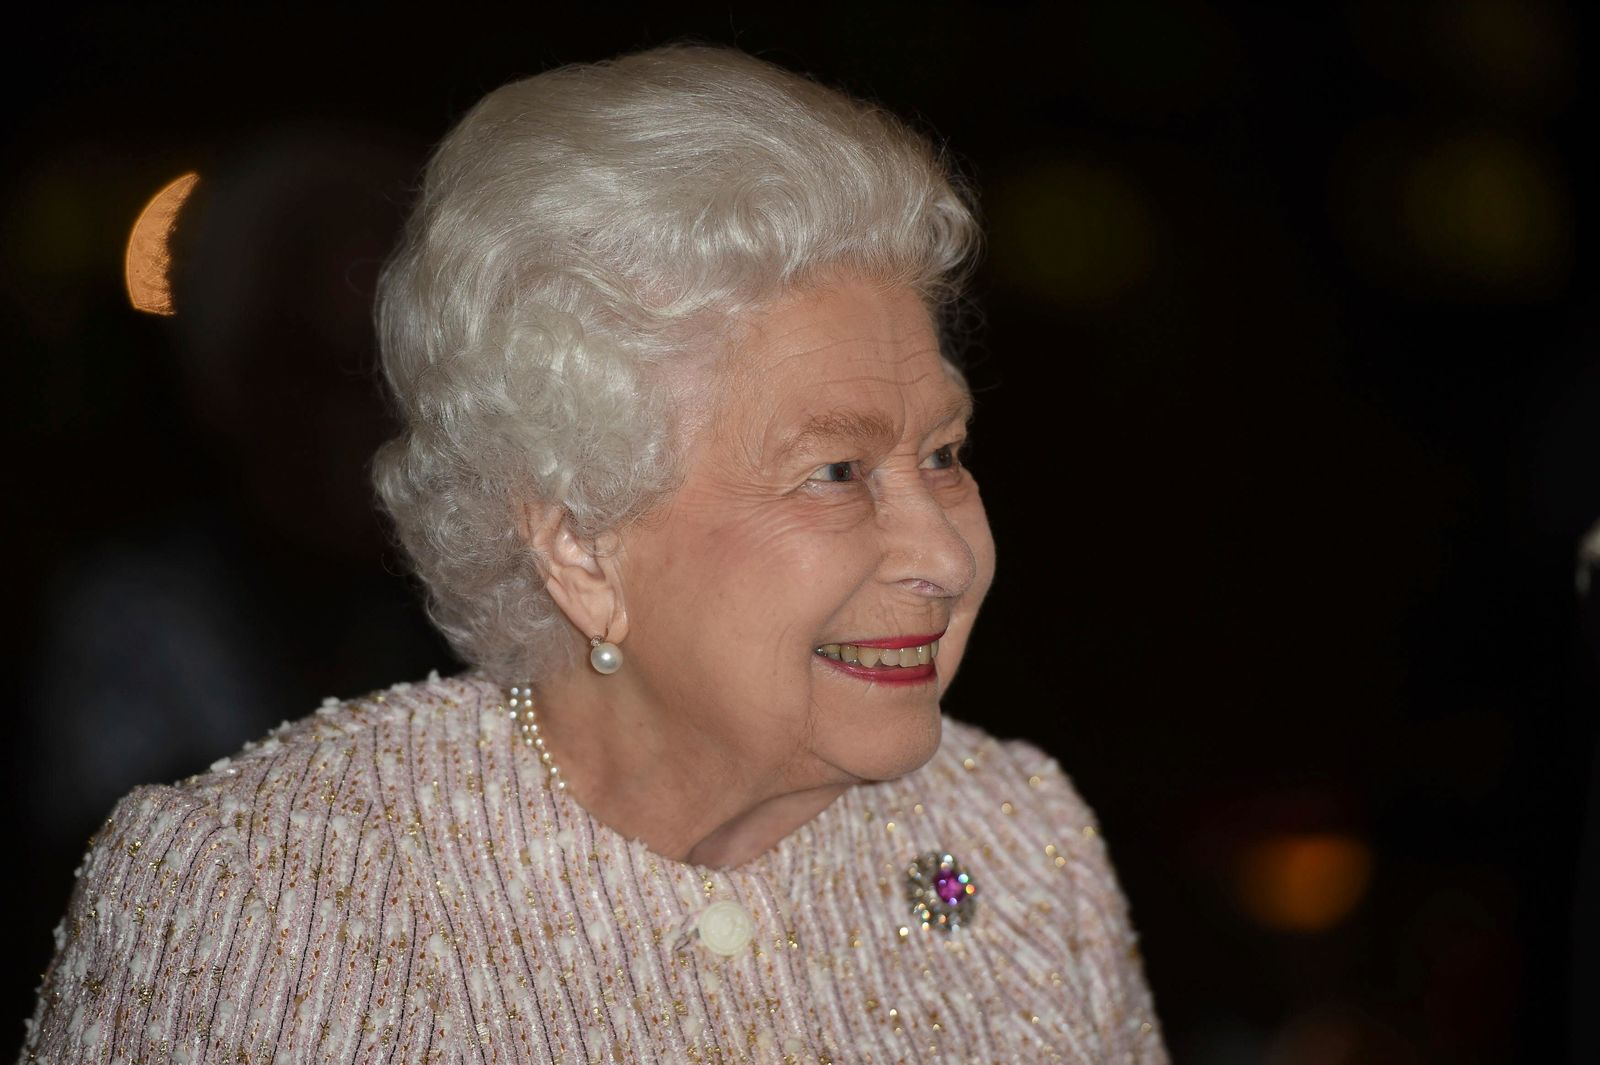 Britain's Queen Elizabeth II smiles as she arrives at the Royal institute of International Affairs in Chatham House, London, Wednesday Nov. 20, 2019. (Eddie Mulholland, Pool via AP)